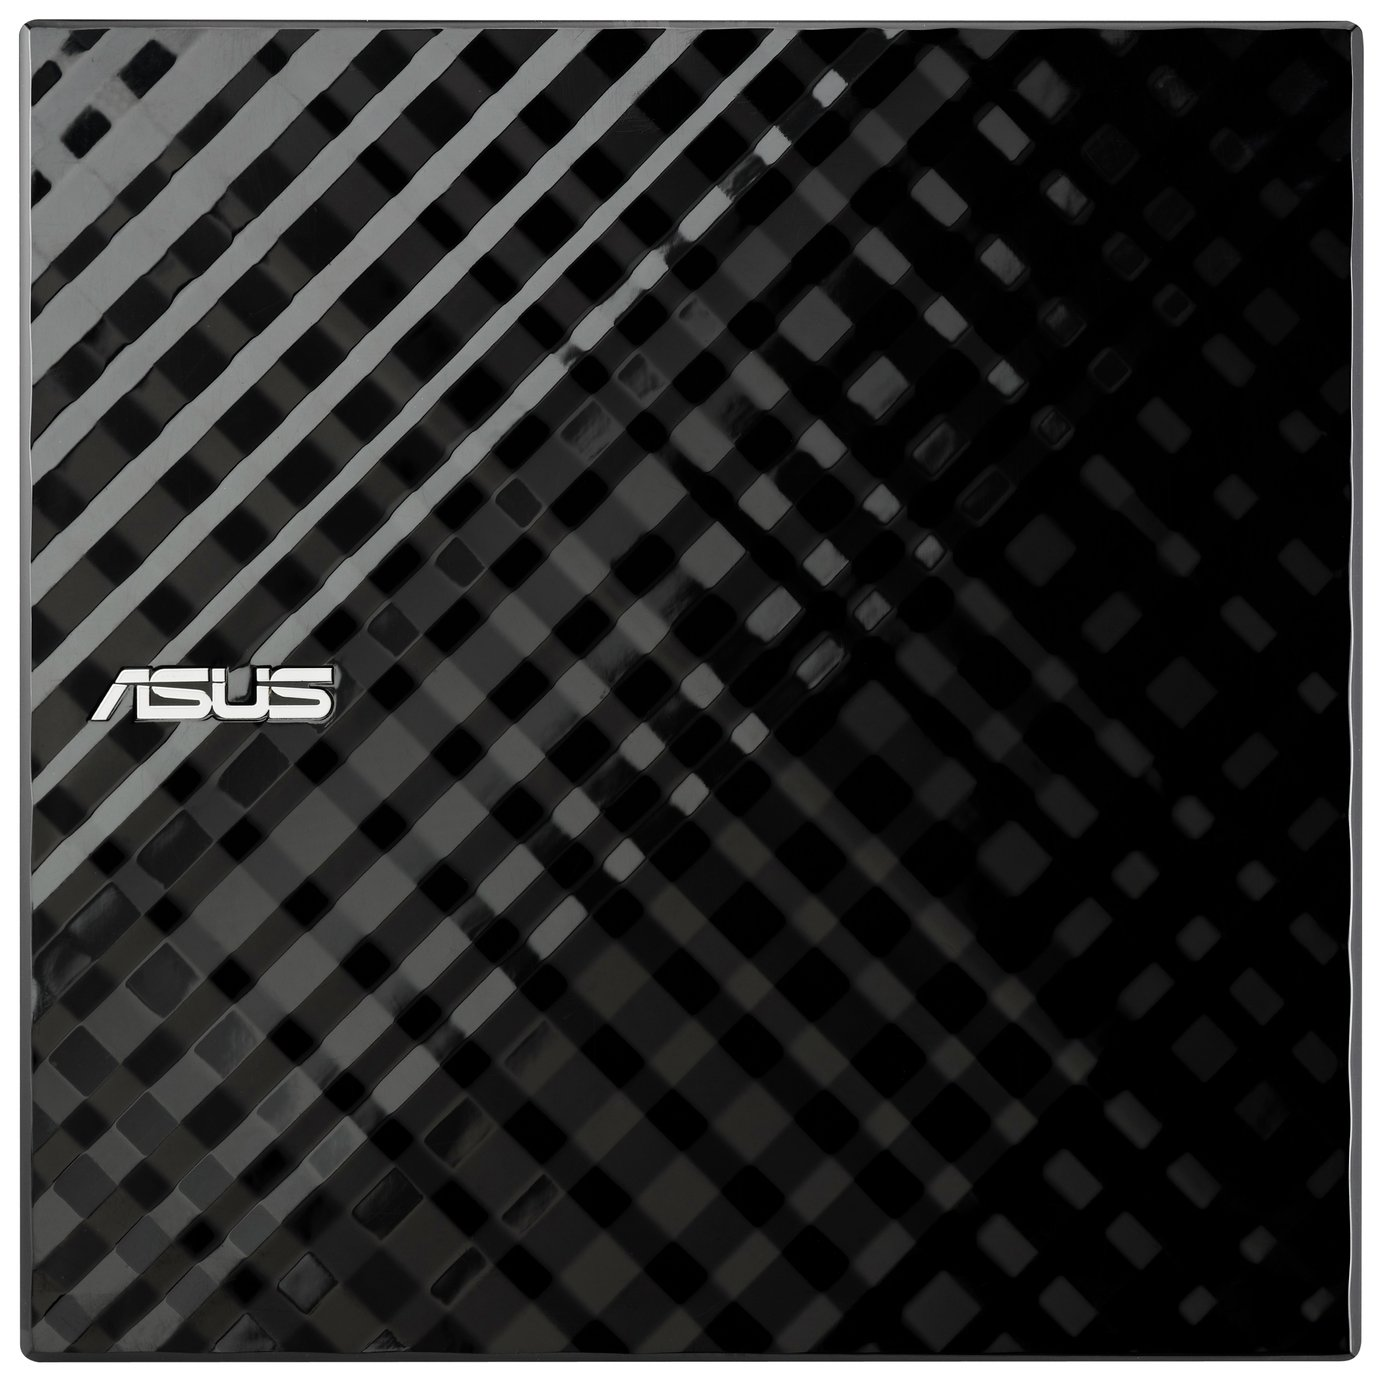 Asus Slim External DVD Writer - Black from Asus